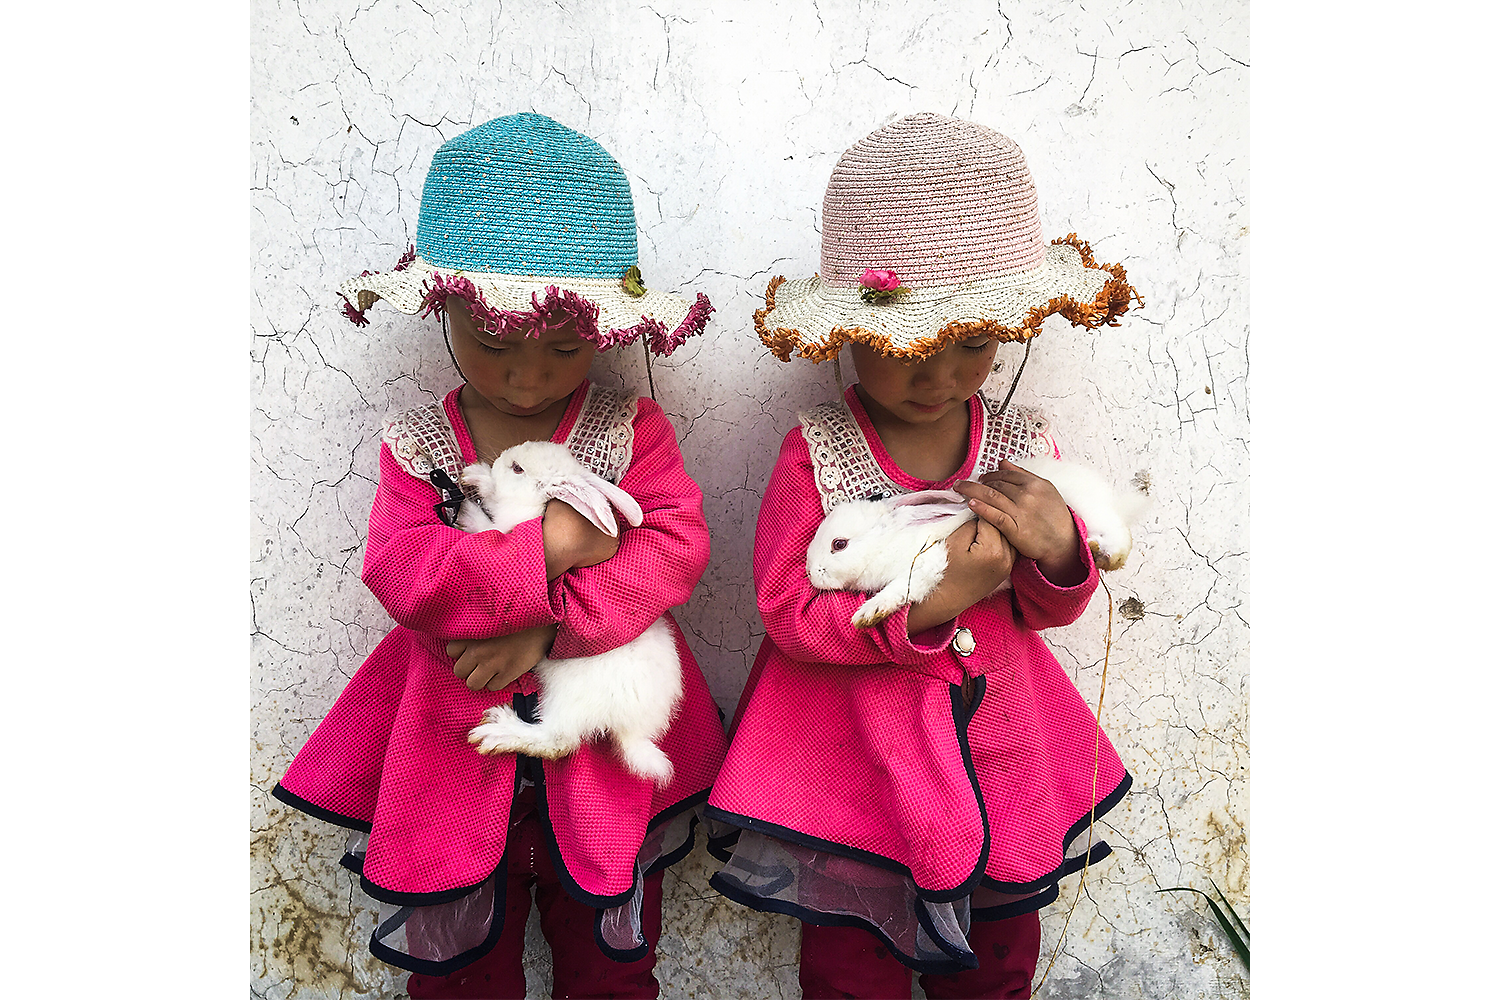 Three-year-old twin sisters Xinran and Xinyi play with their pet rabbits outside their home in Taizicheng Village, Hebei province. Photo by Yan Cong @yancongphoto